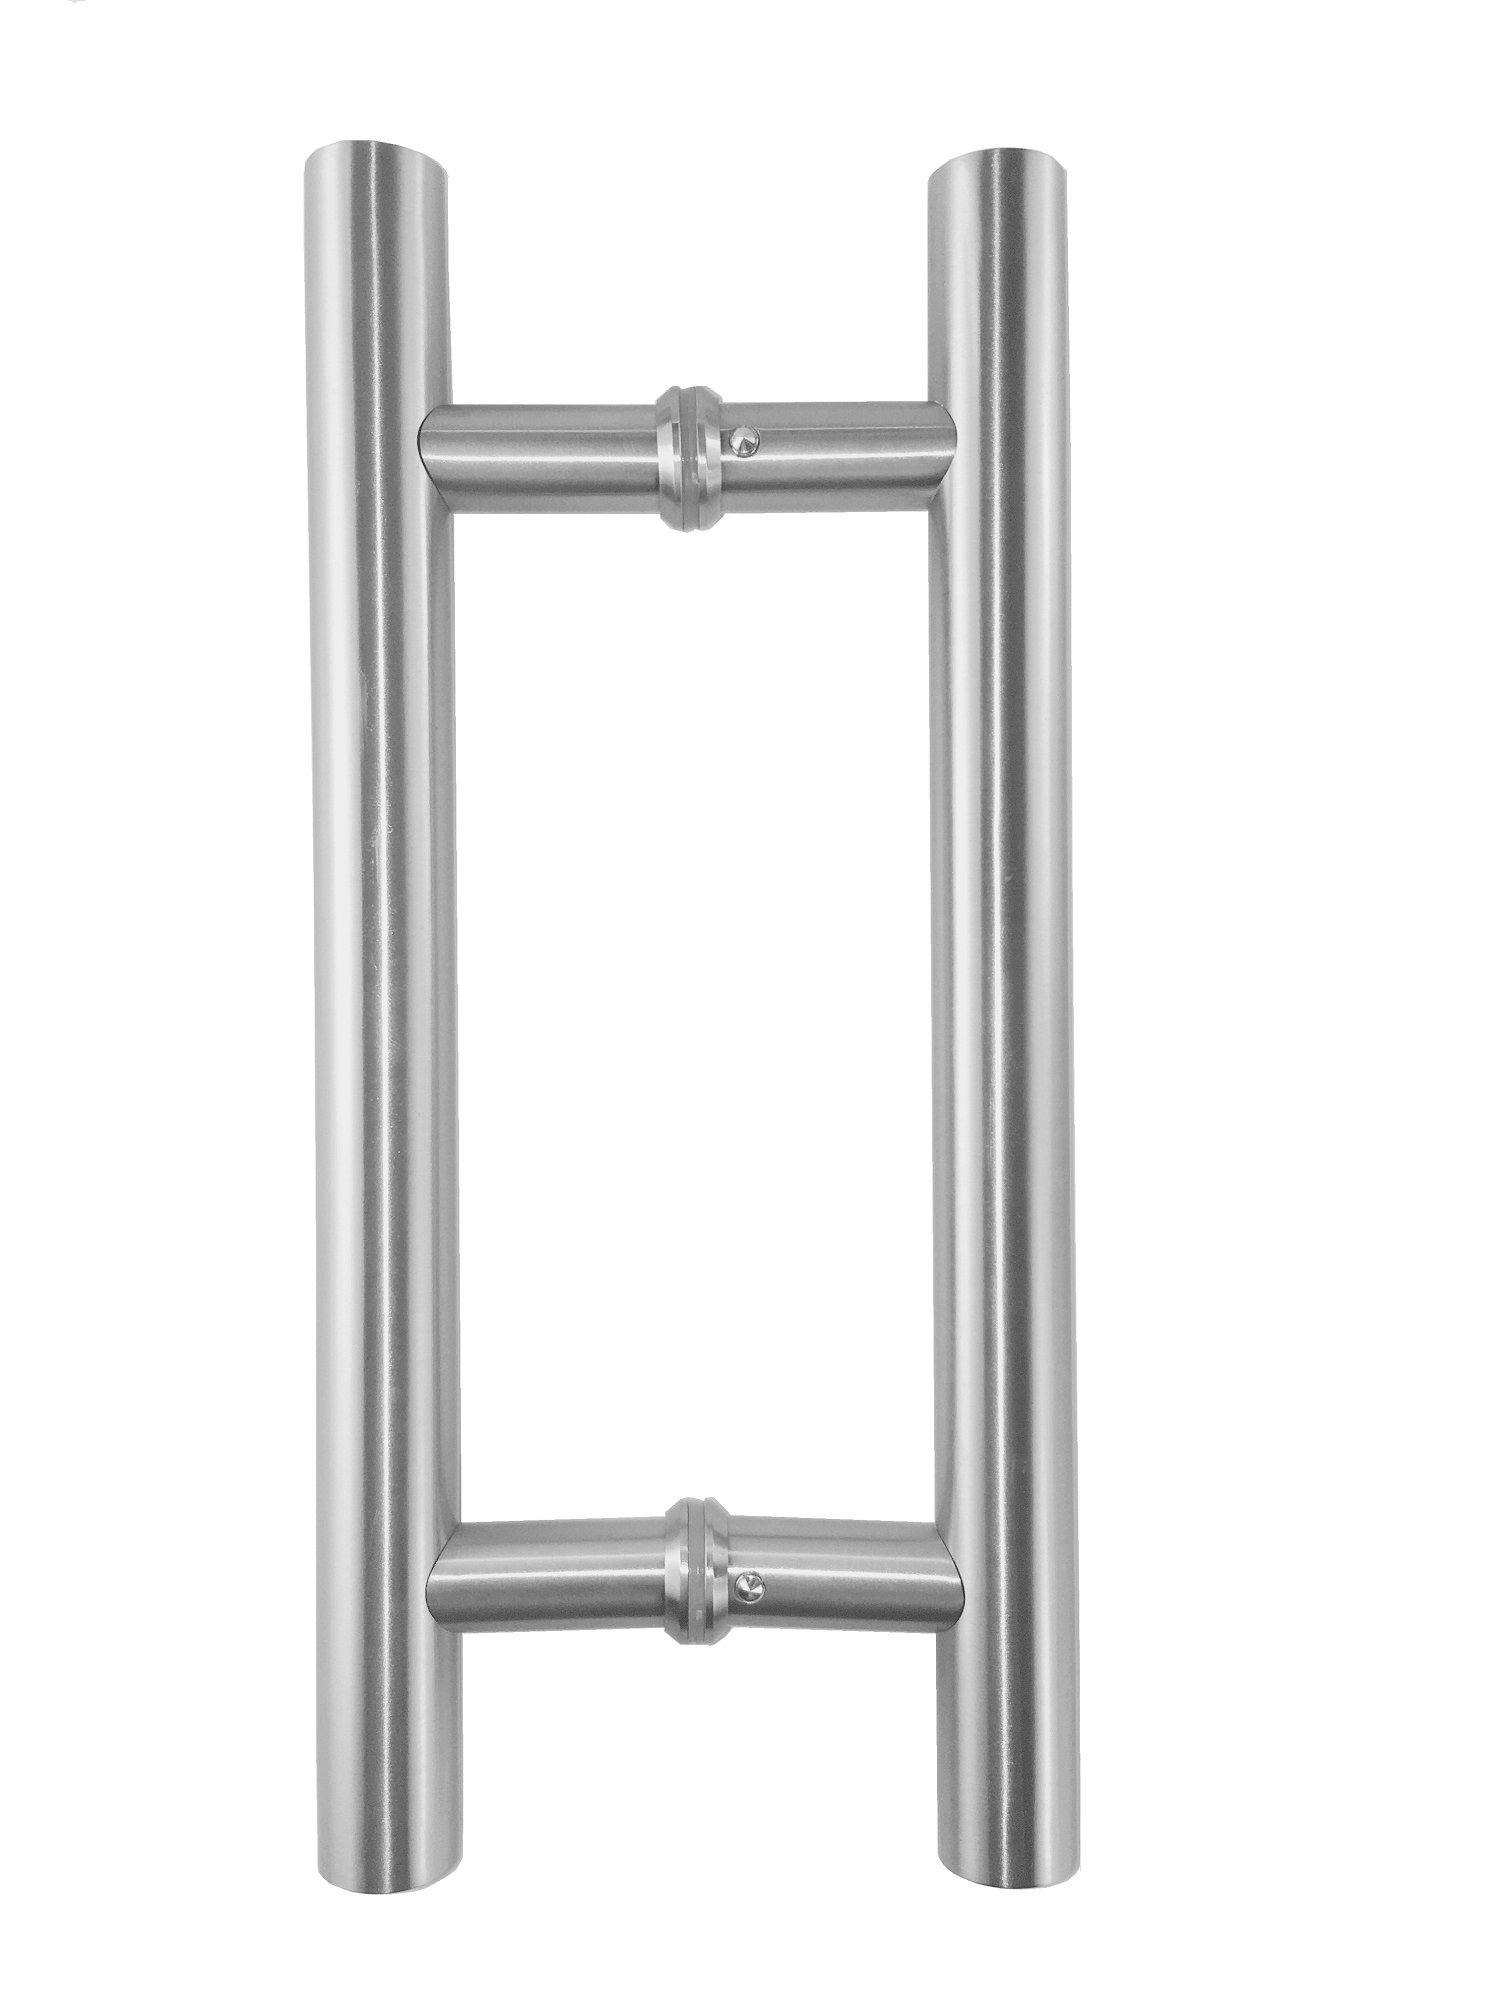 Promotion! VRSS 304 Stainless Steel Commercial H-Shape/Ladder Style Back to Back Push Pull Door Handle 3 Years Replacement Warranty (12'' Length/1'' Diamter)